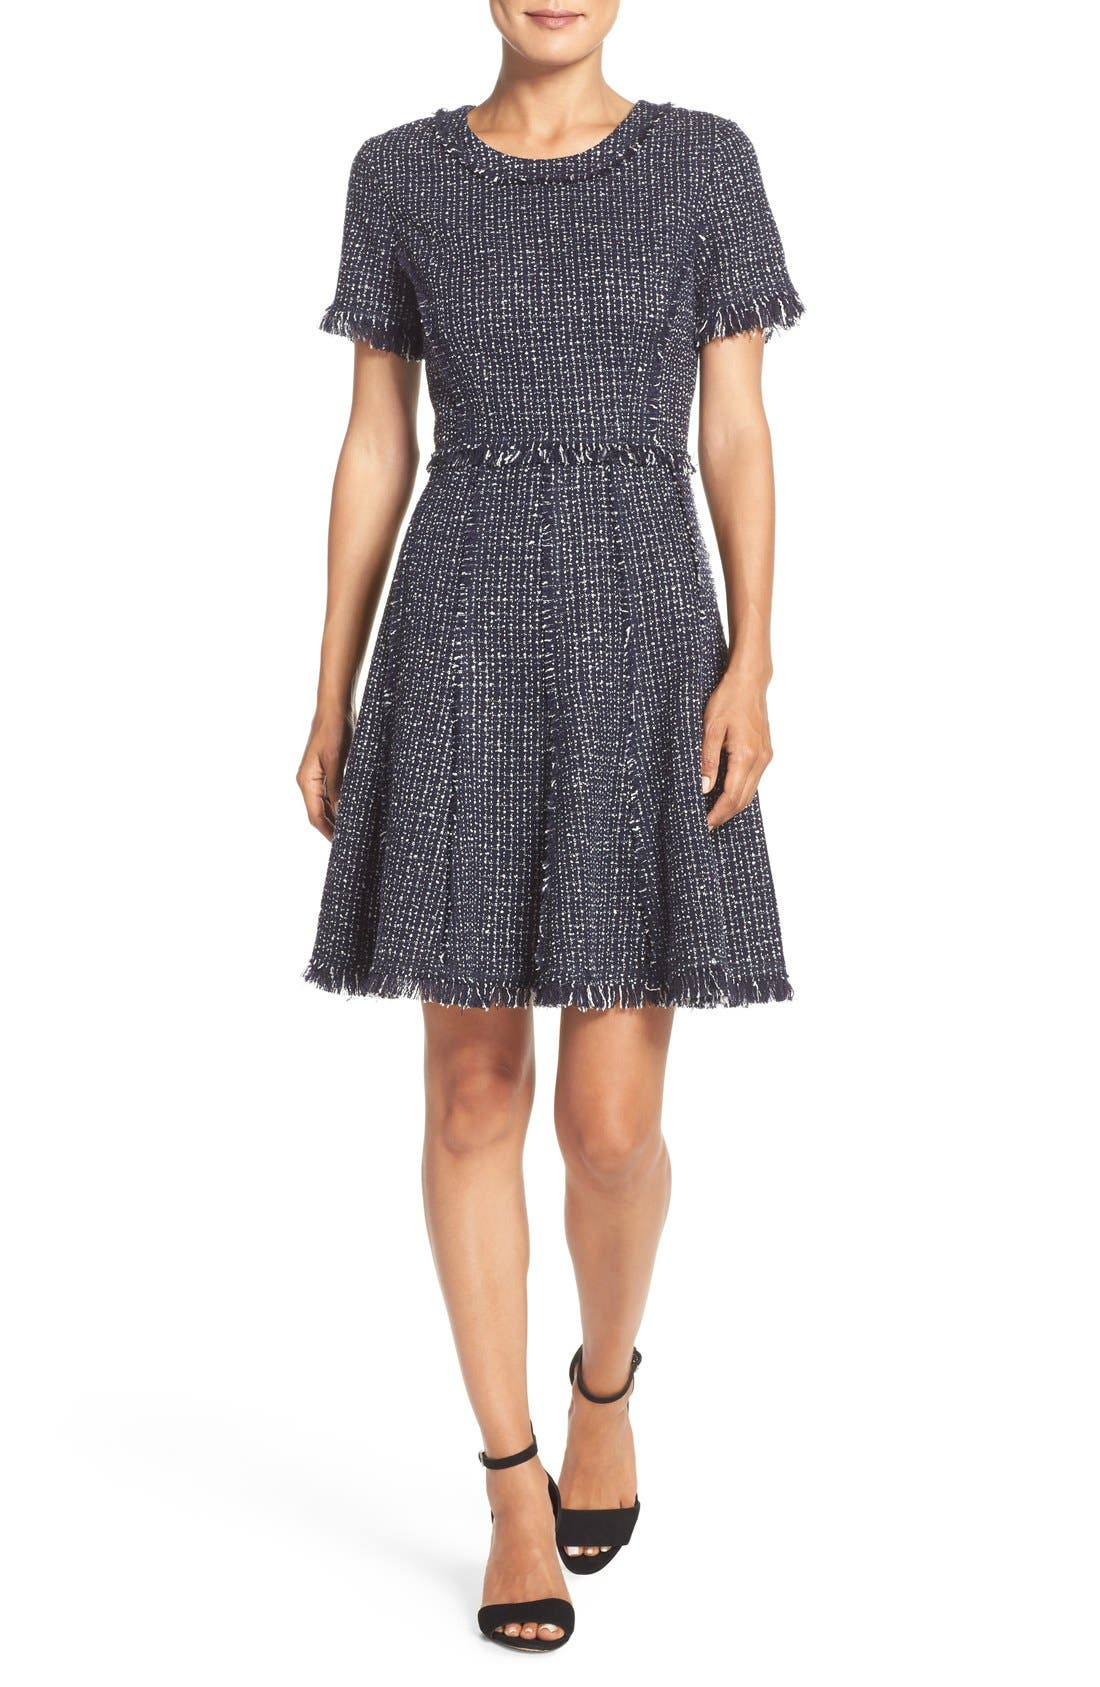 Alternate Image 1 Selected - Eliza J Tweed Fit & Flare Dress (Regular & Petite)